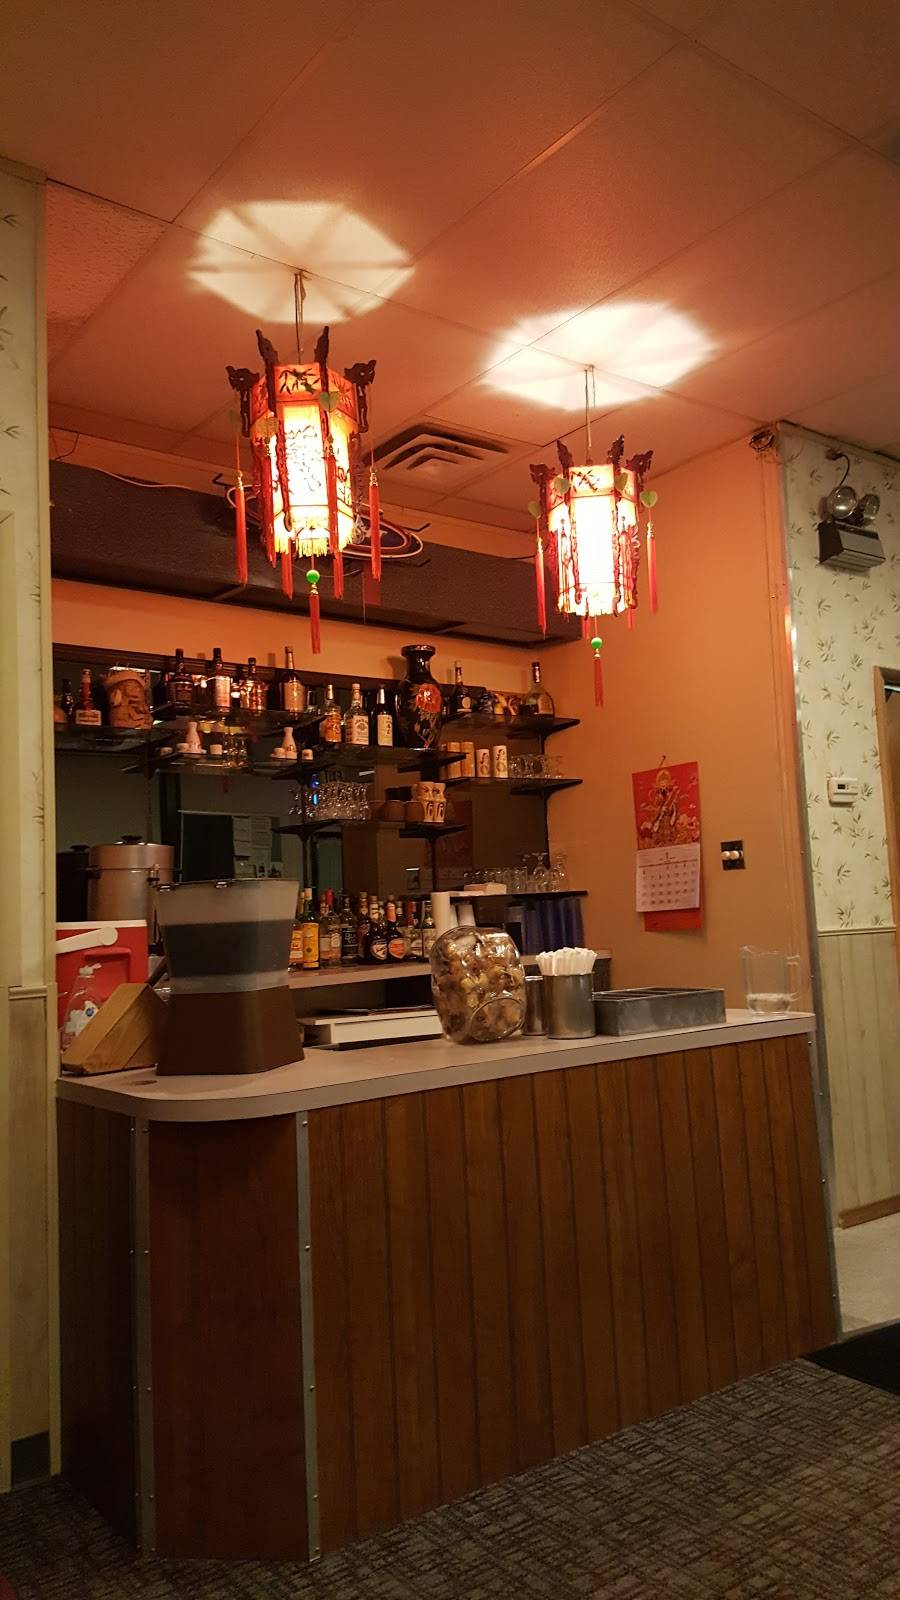 Bamboo House Restaurant | restaurant | 1234 N Court St, Circleville, OH 43113, USA | 7404747333 OR +1 740-474-7333